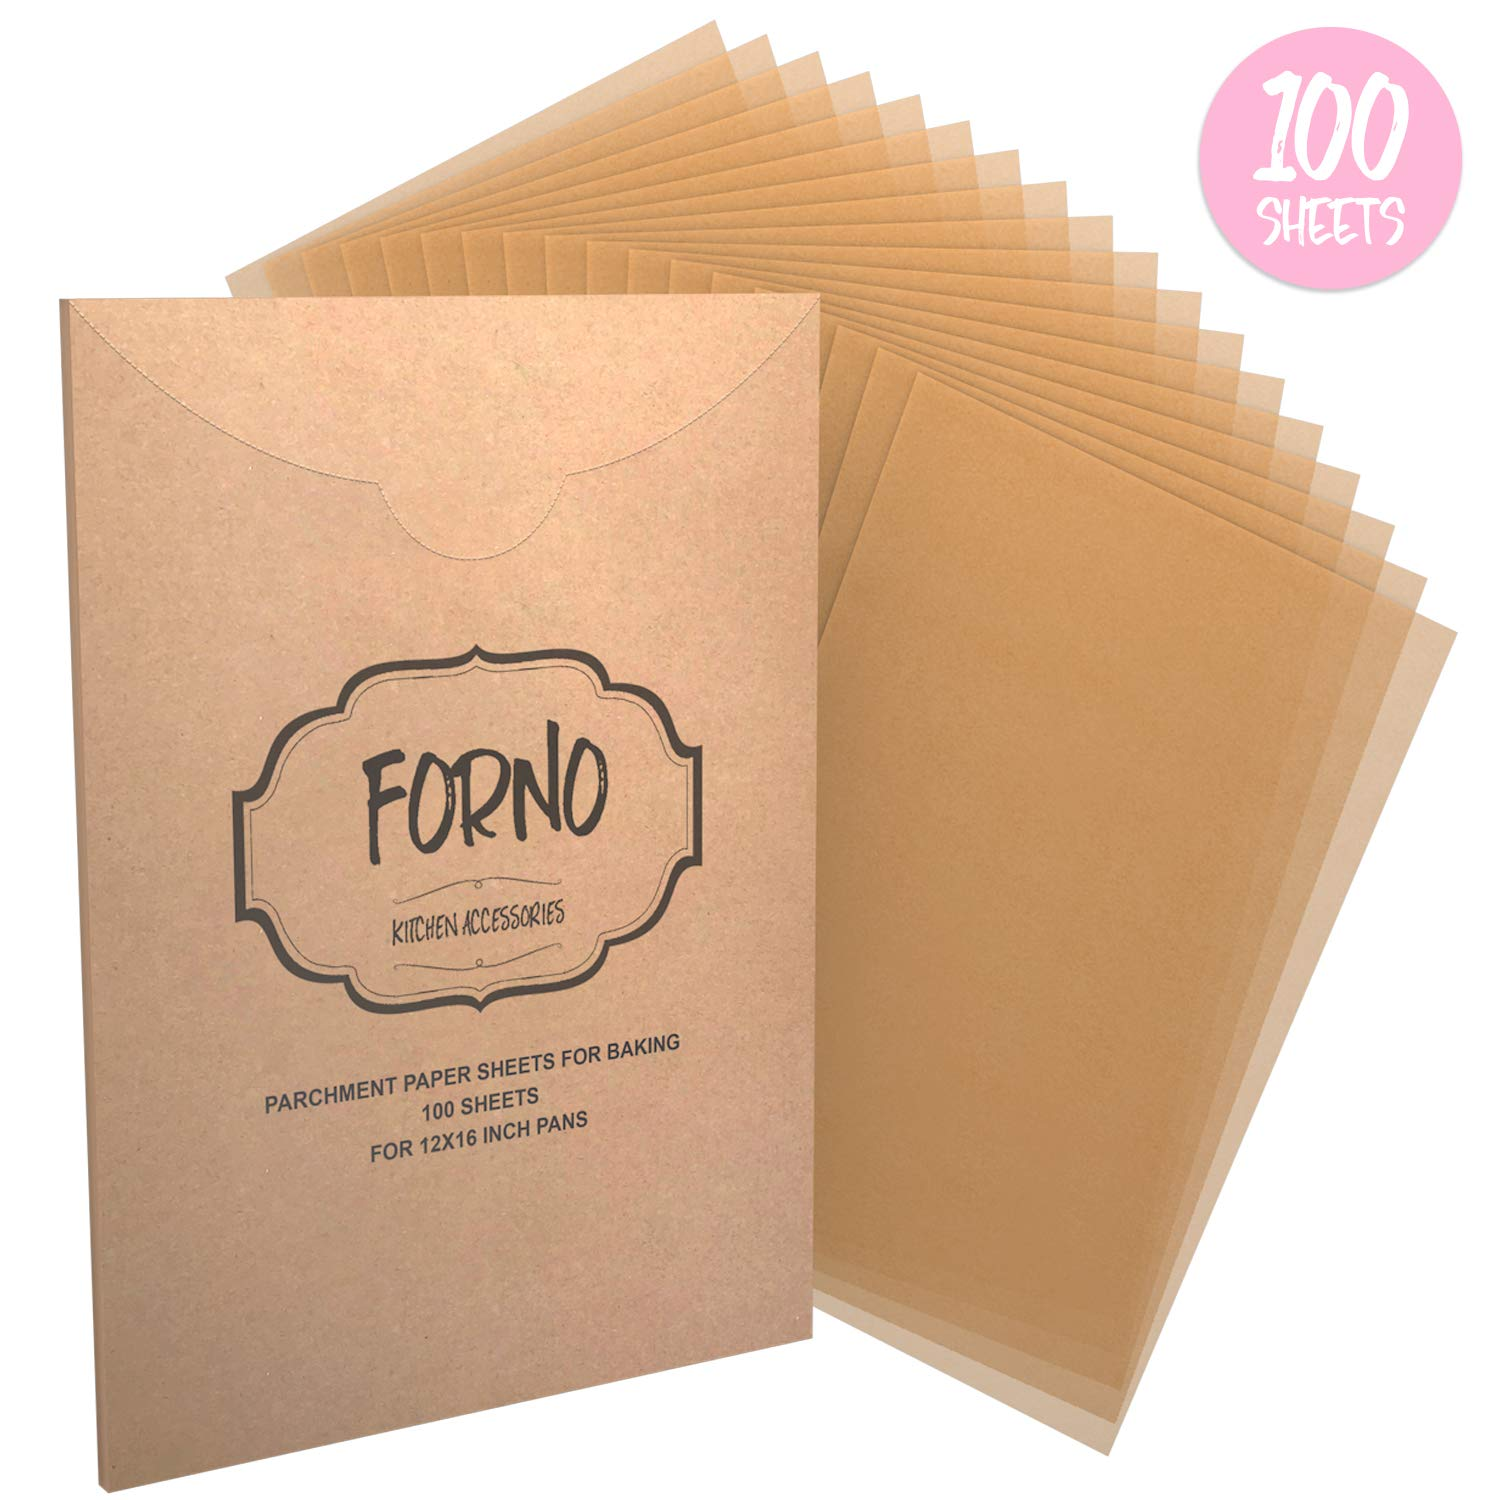 Parchment Paper Sheets For Baking - Reusable Unbleached Precut Parchment Paper Liners For 12 X 16 Cookie Sheets & Pans - Best For Non-Stick Baking - 100 Sheets by Forno